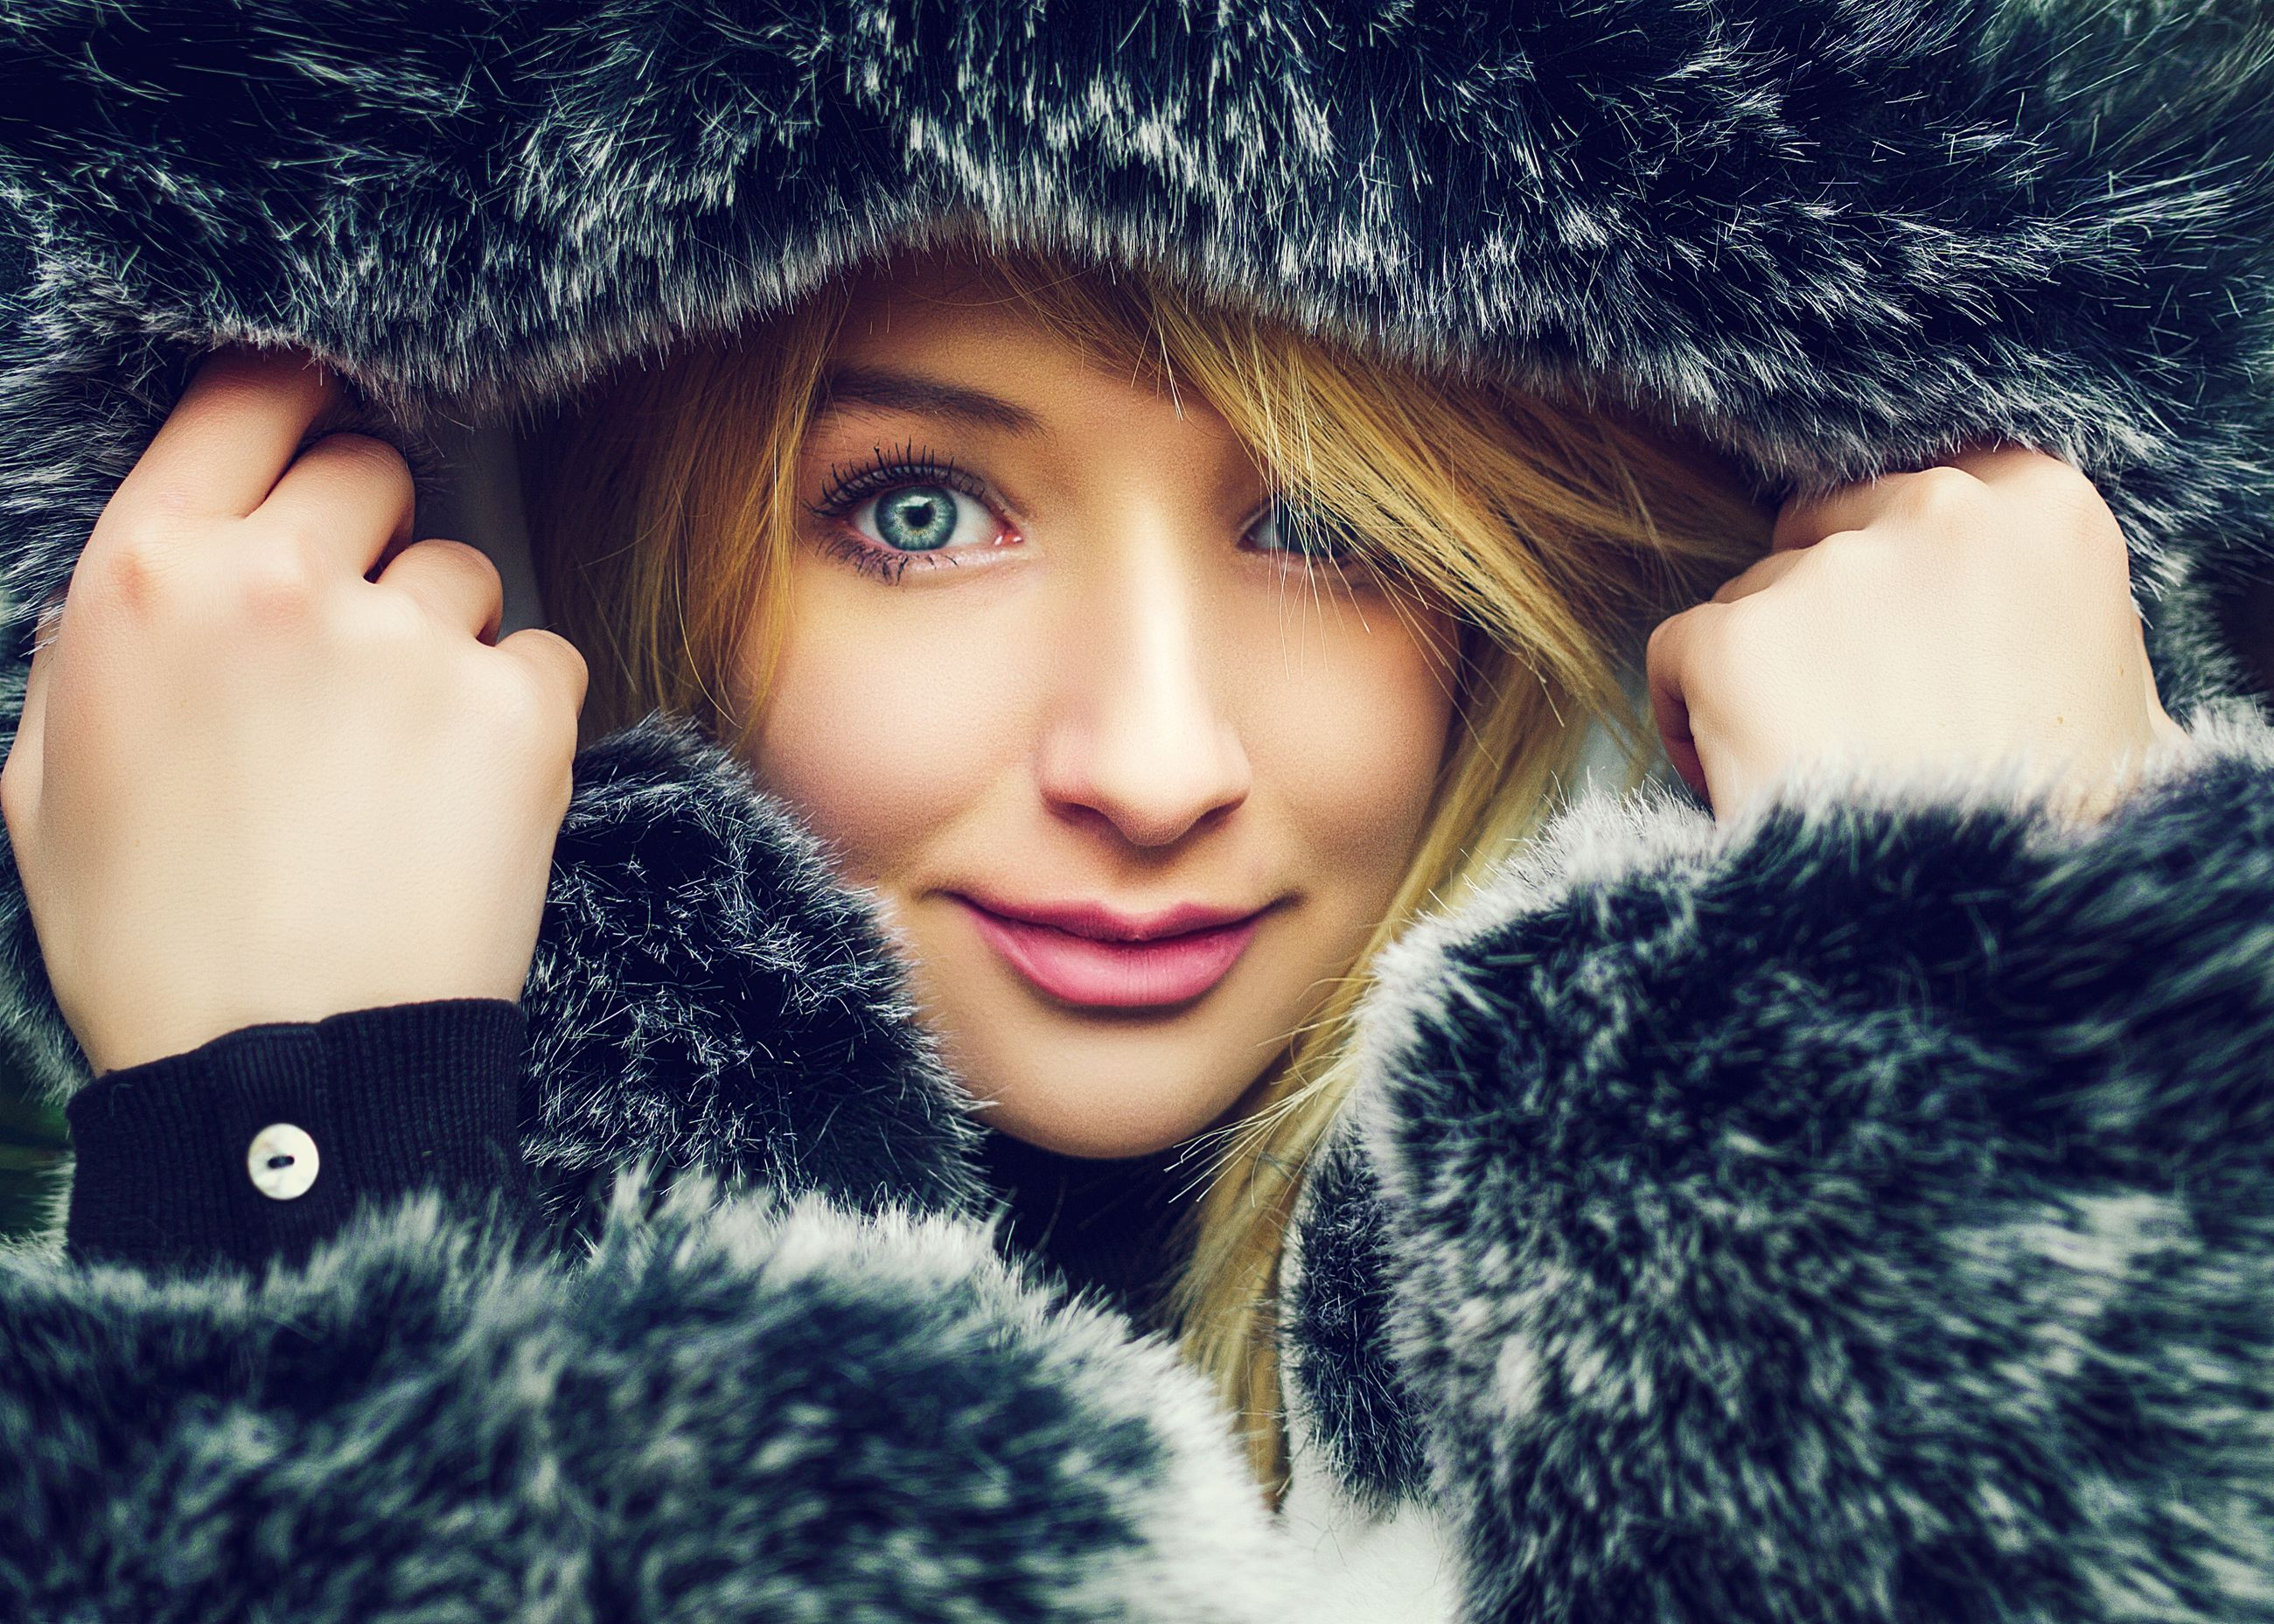 beautiful people, only women, portrait, warm clothing, adults only, one young woman only, fur, young adult, beauty, beautiful woman, one woman only, fur coat, night, glamour, people, adult, one person, close-up, indoors, cheerful